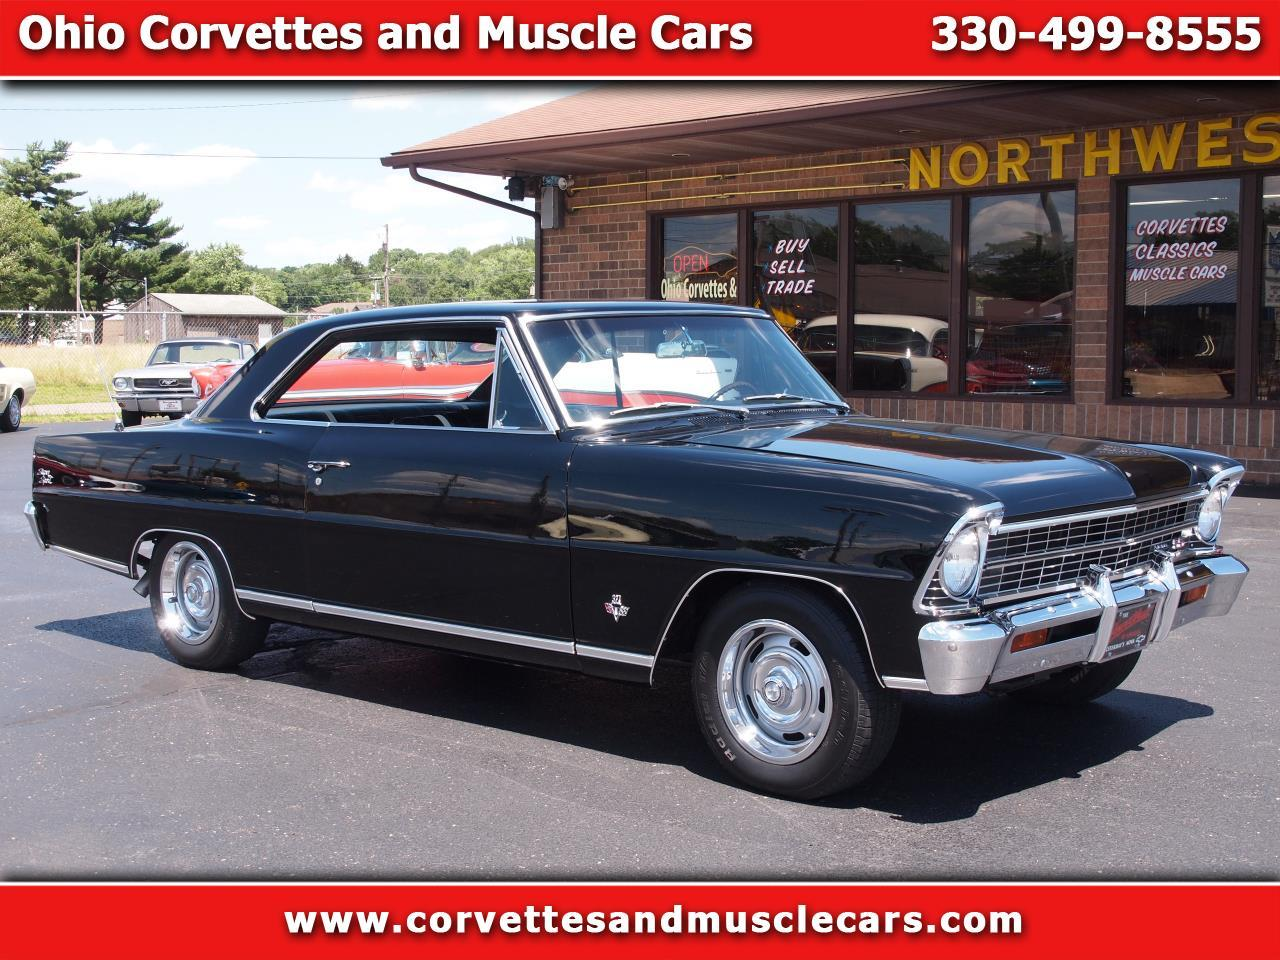 1967 Chevrolet Chevy II Nova (CC-1243055) for sale in North Canton, Ohio